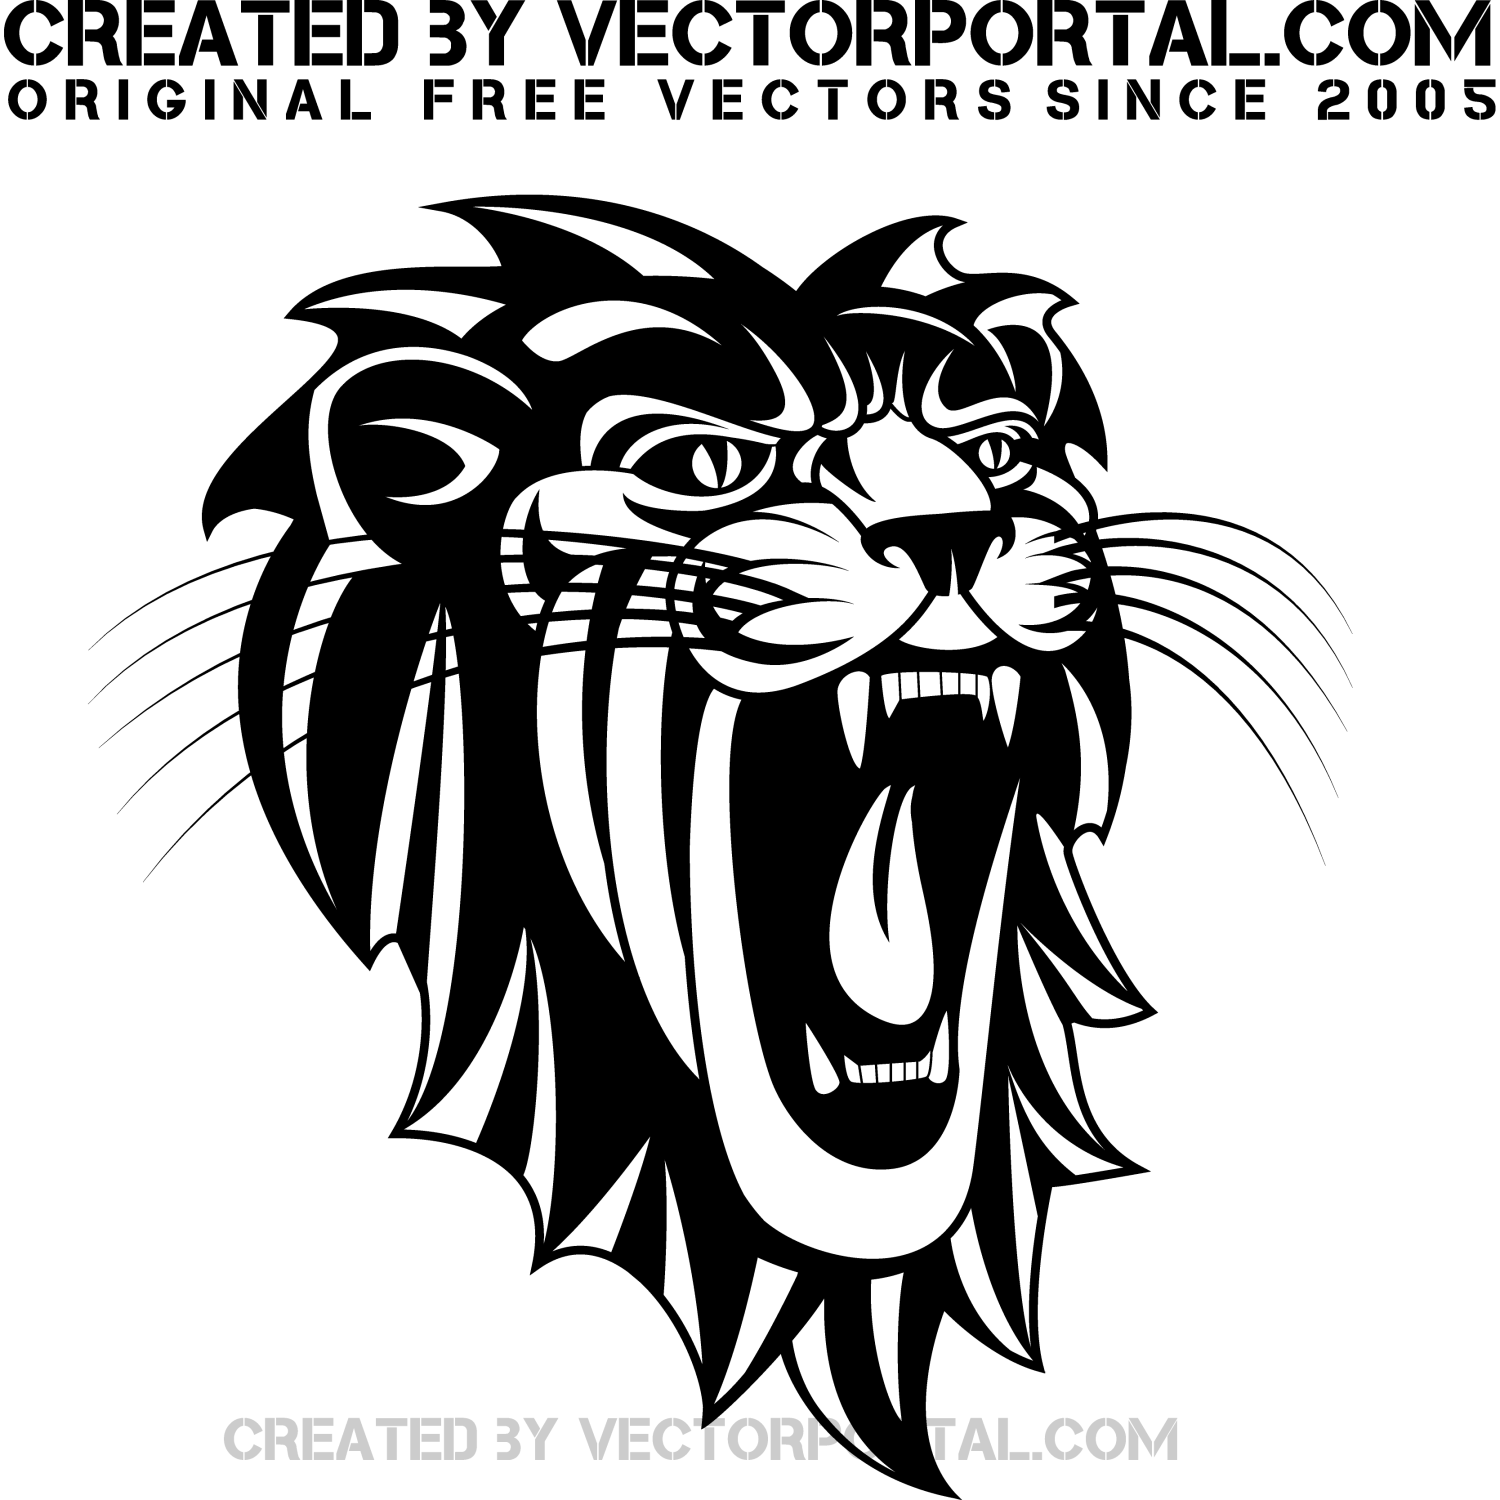 Black and white vector illustration of a roaring lion